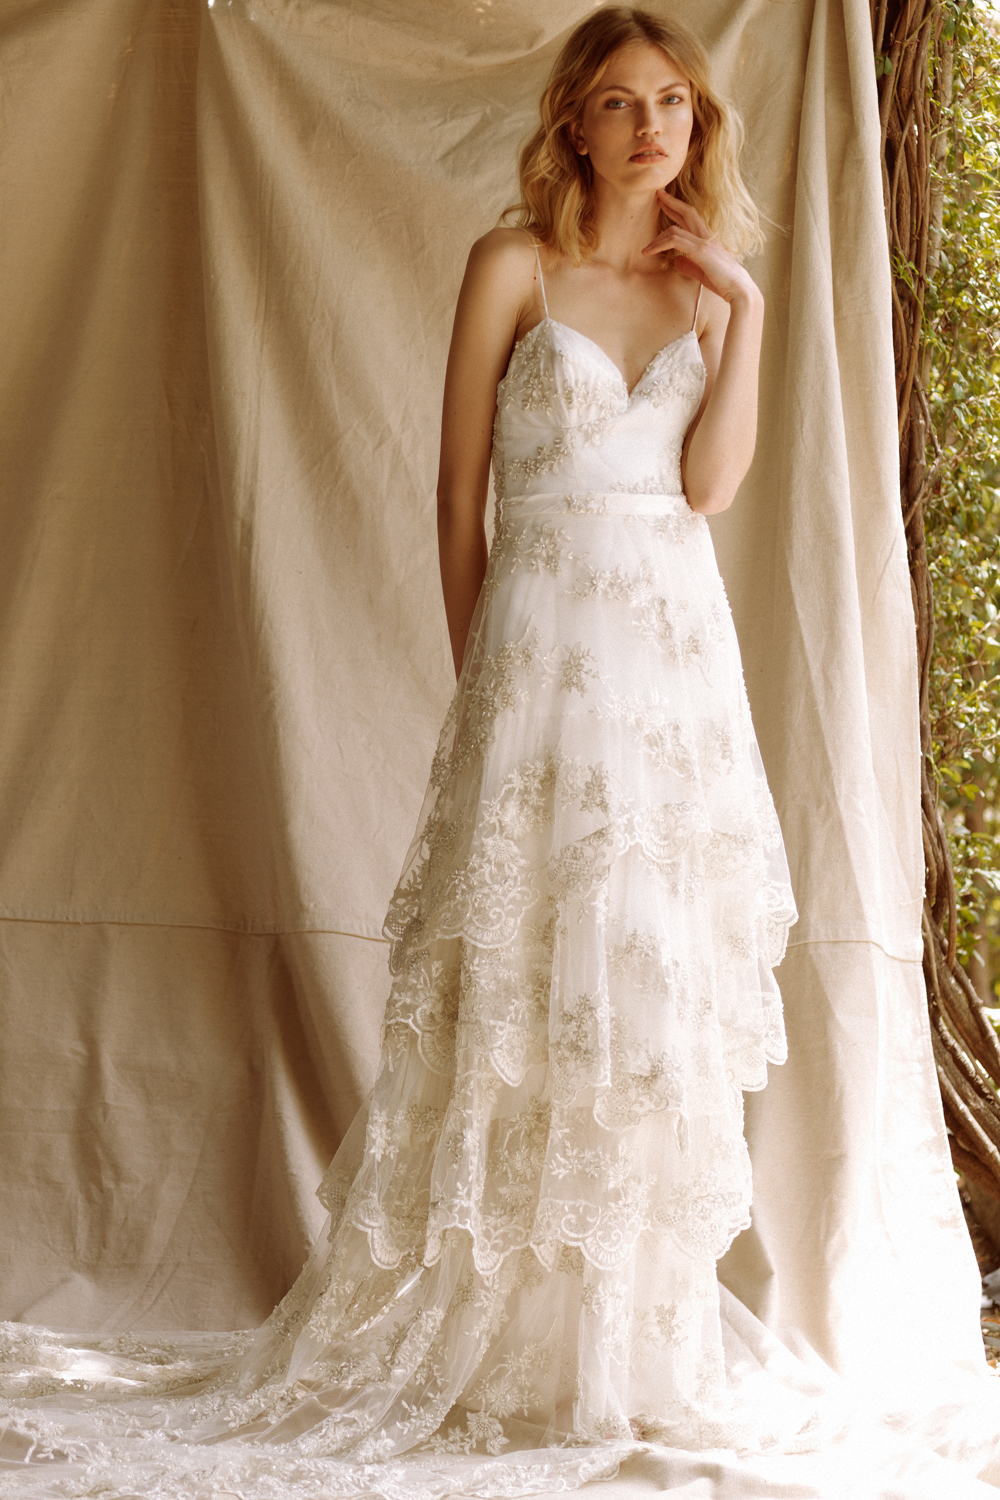 free wedding dress free wedding dresses Free People Unveil New Boho Inspired Wedding Dress Collection